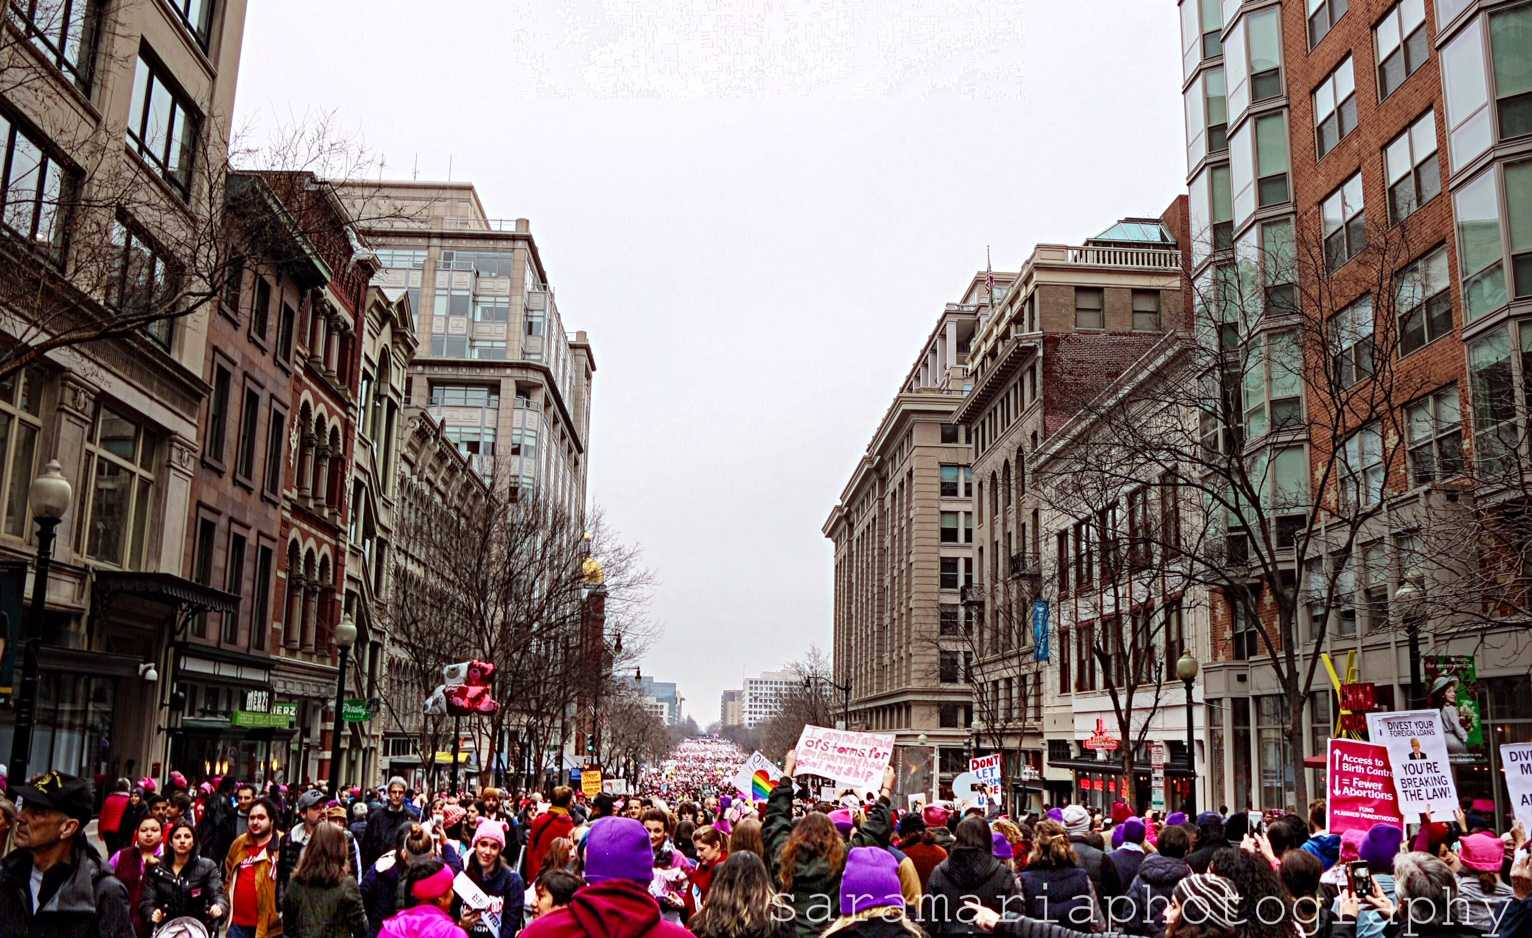 A view of the crowd stretching for miles (photo: Sara Monterroso)